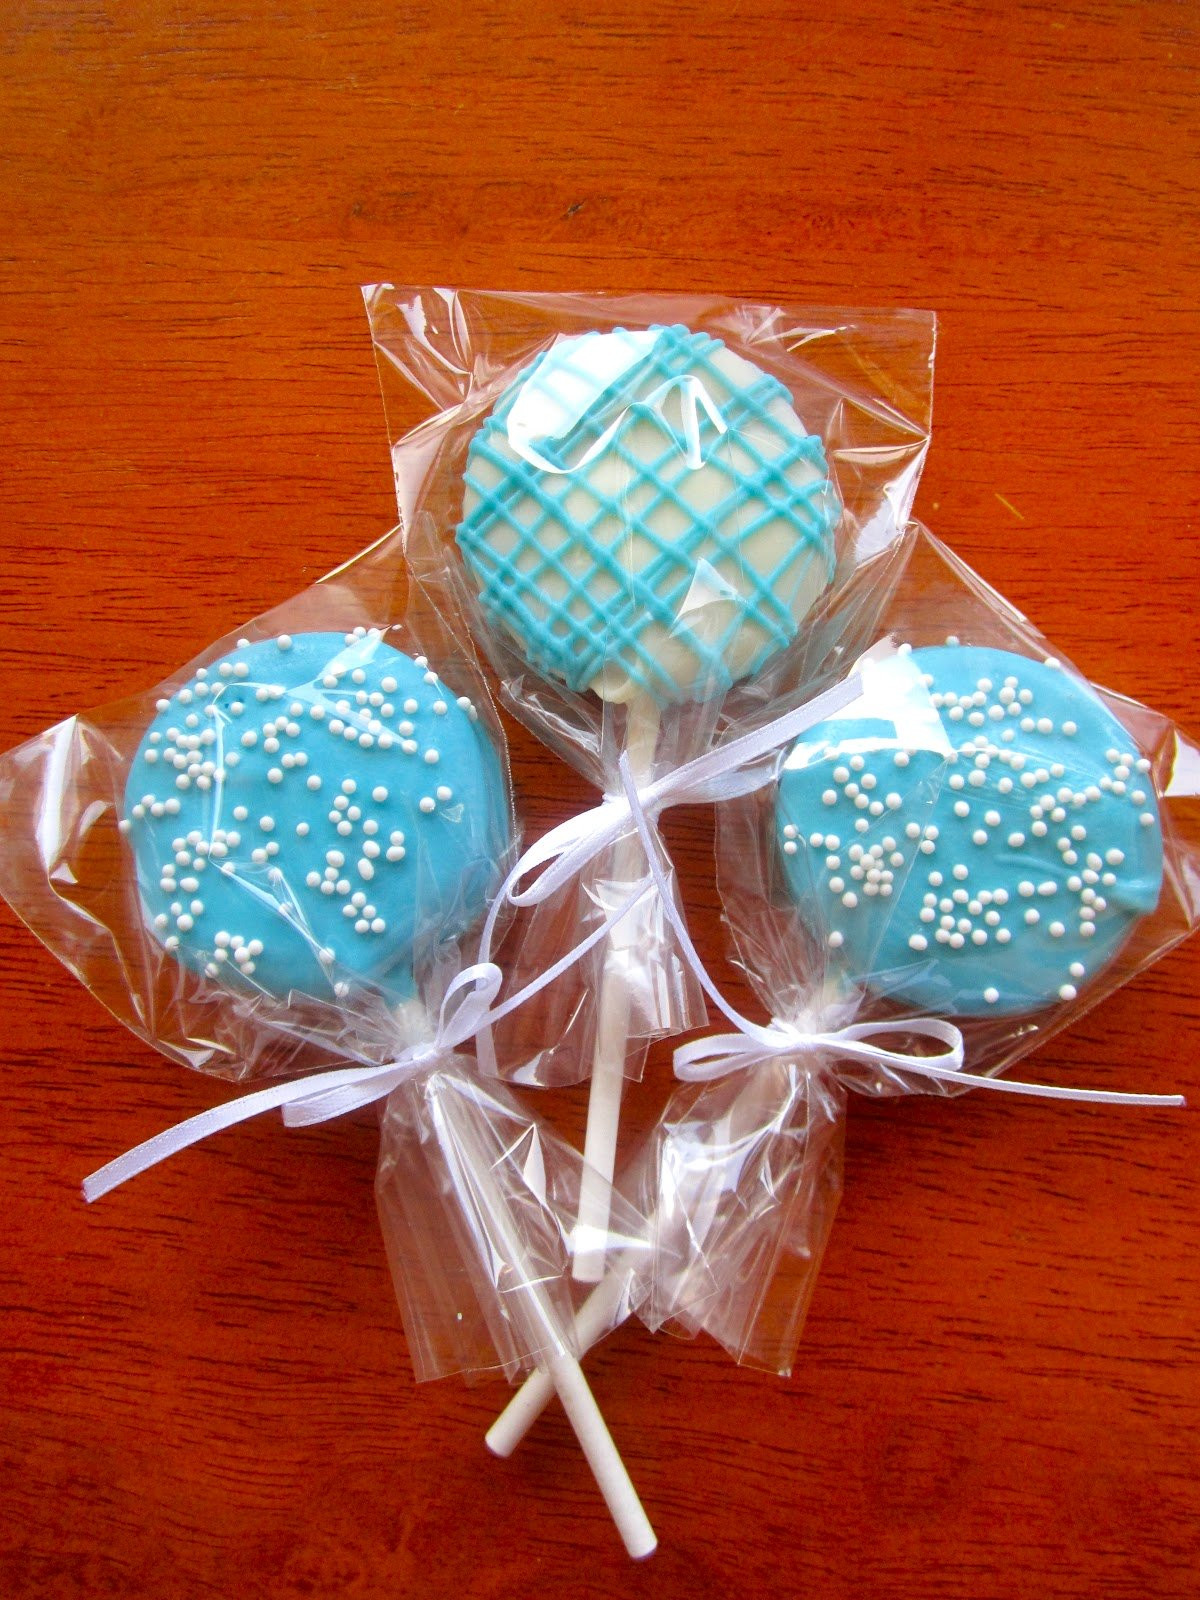 Craft Ideas For Baby Shower Decorations  32 Cute Ideas For Homemade Baby Shower Favors